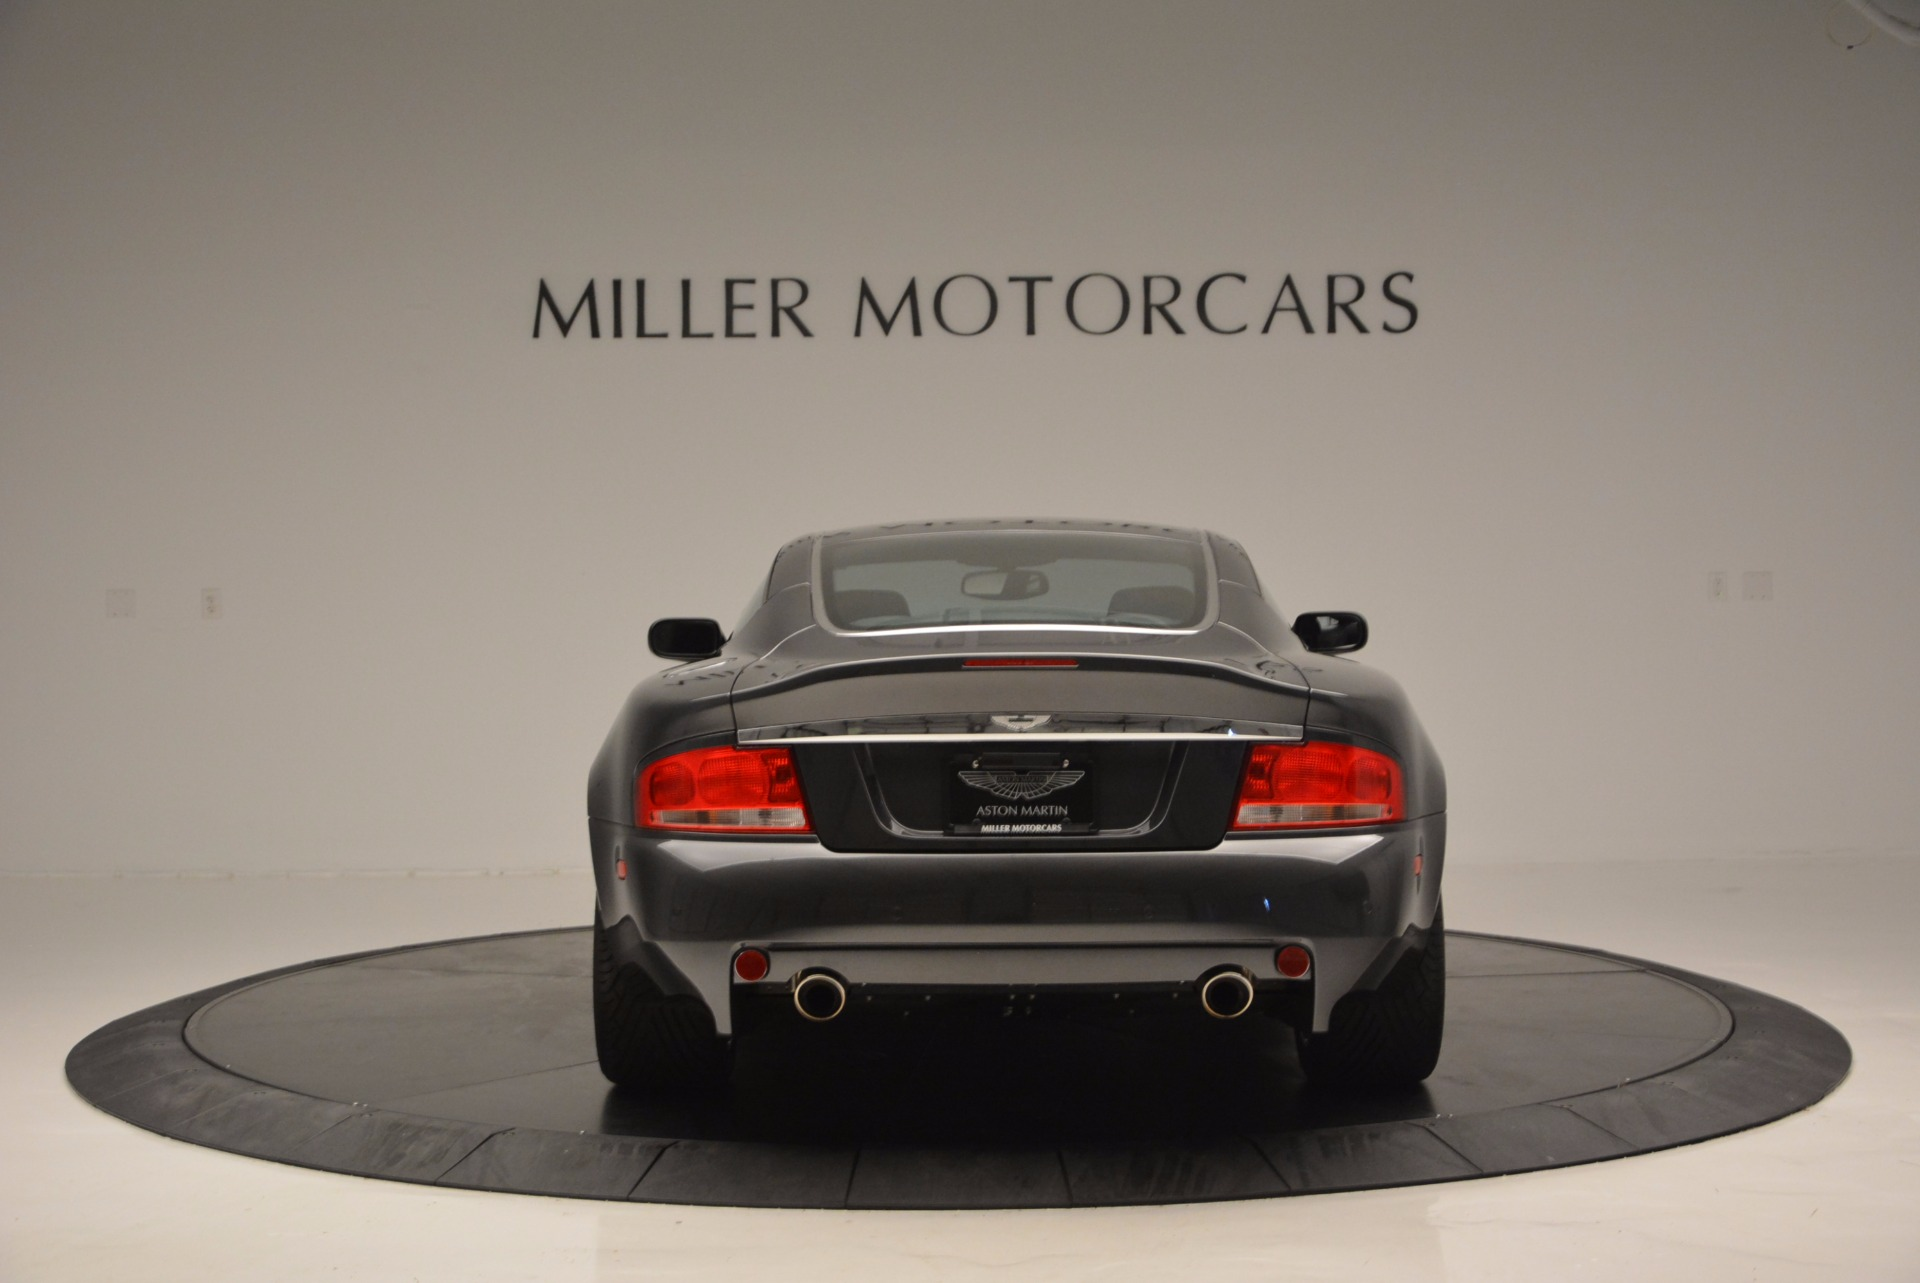 Used 2005 Aston Martin V12 Vanquish S For Sale In Westport, CT 645_p6